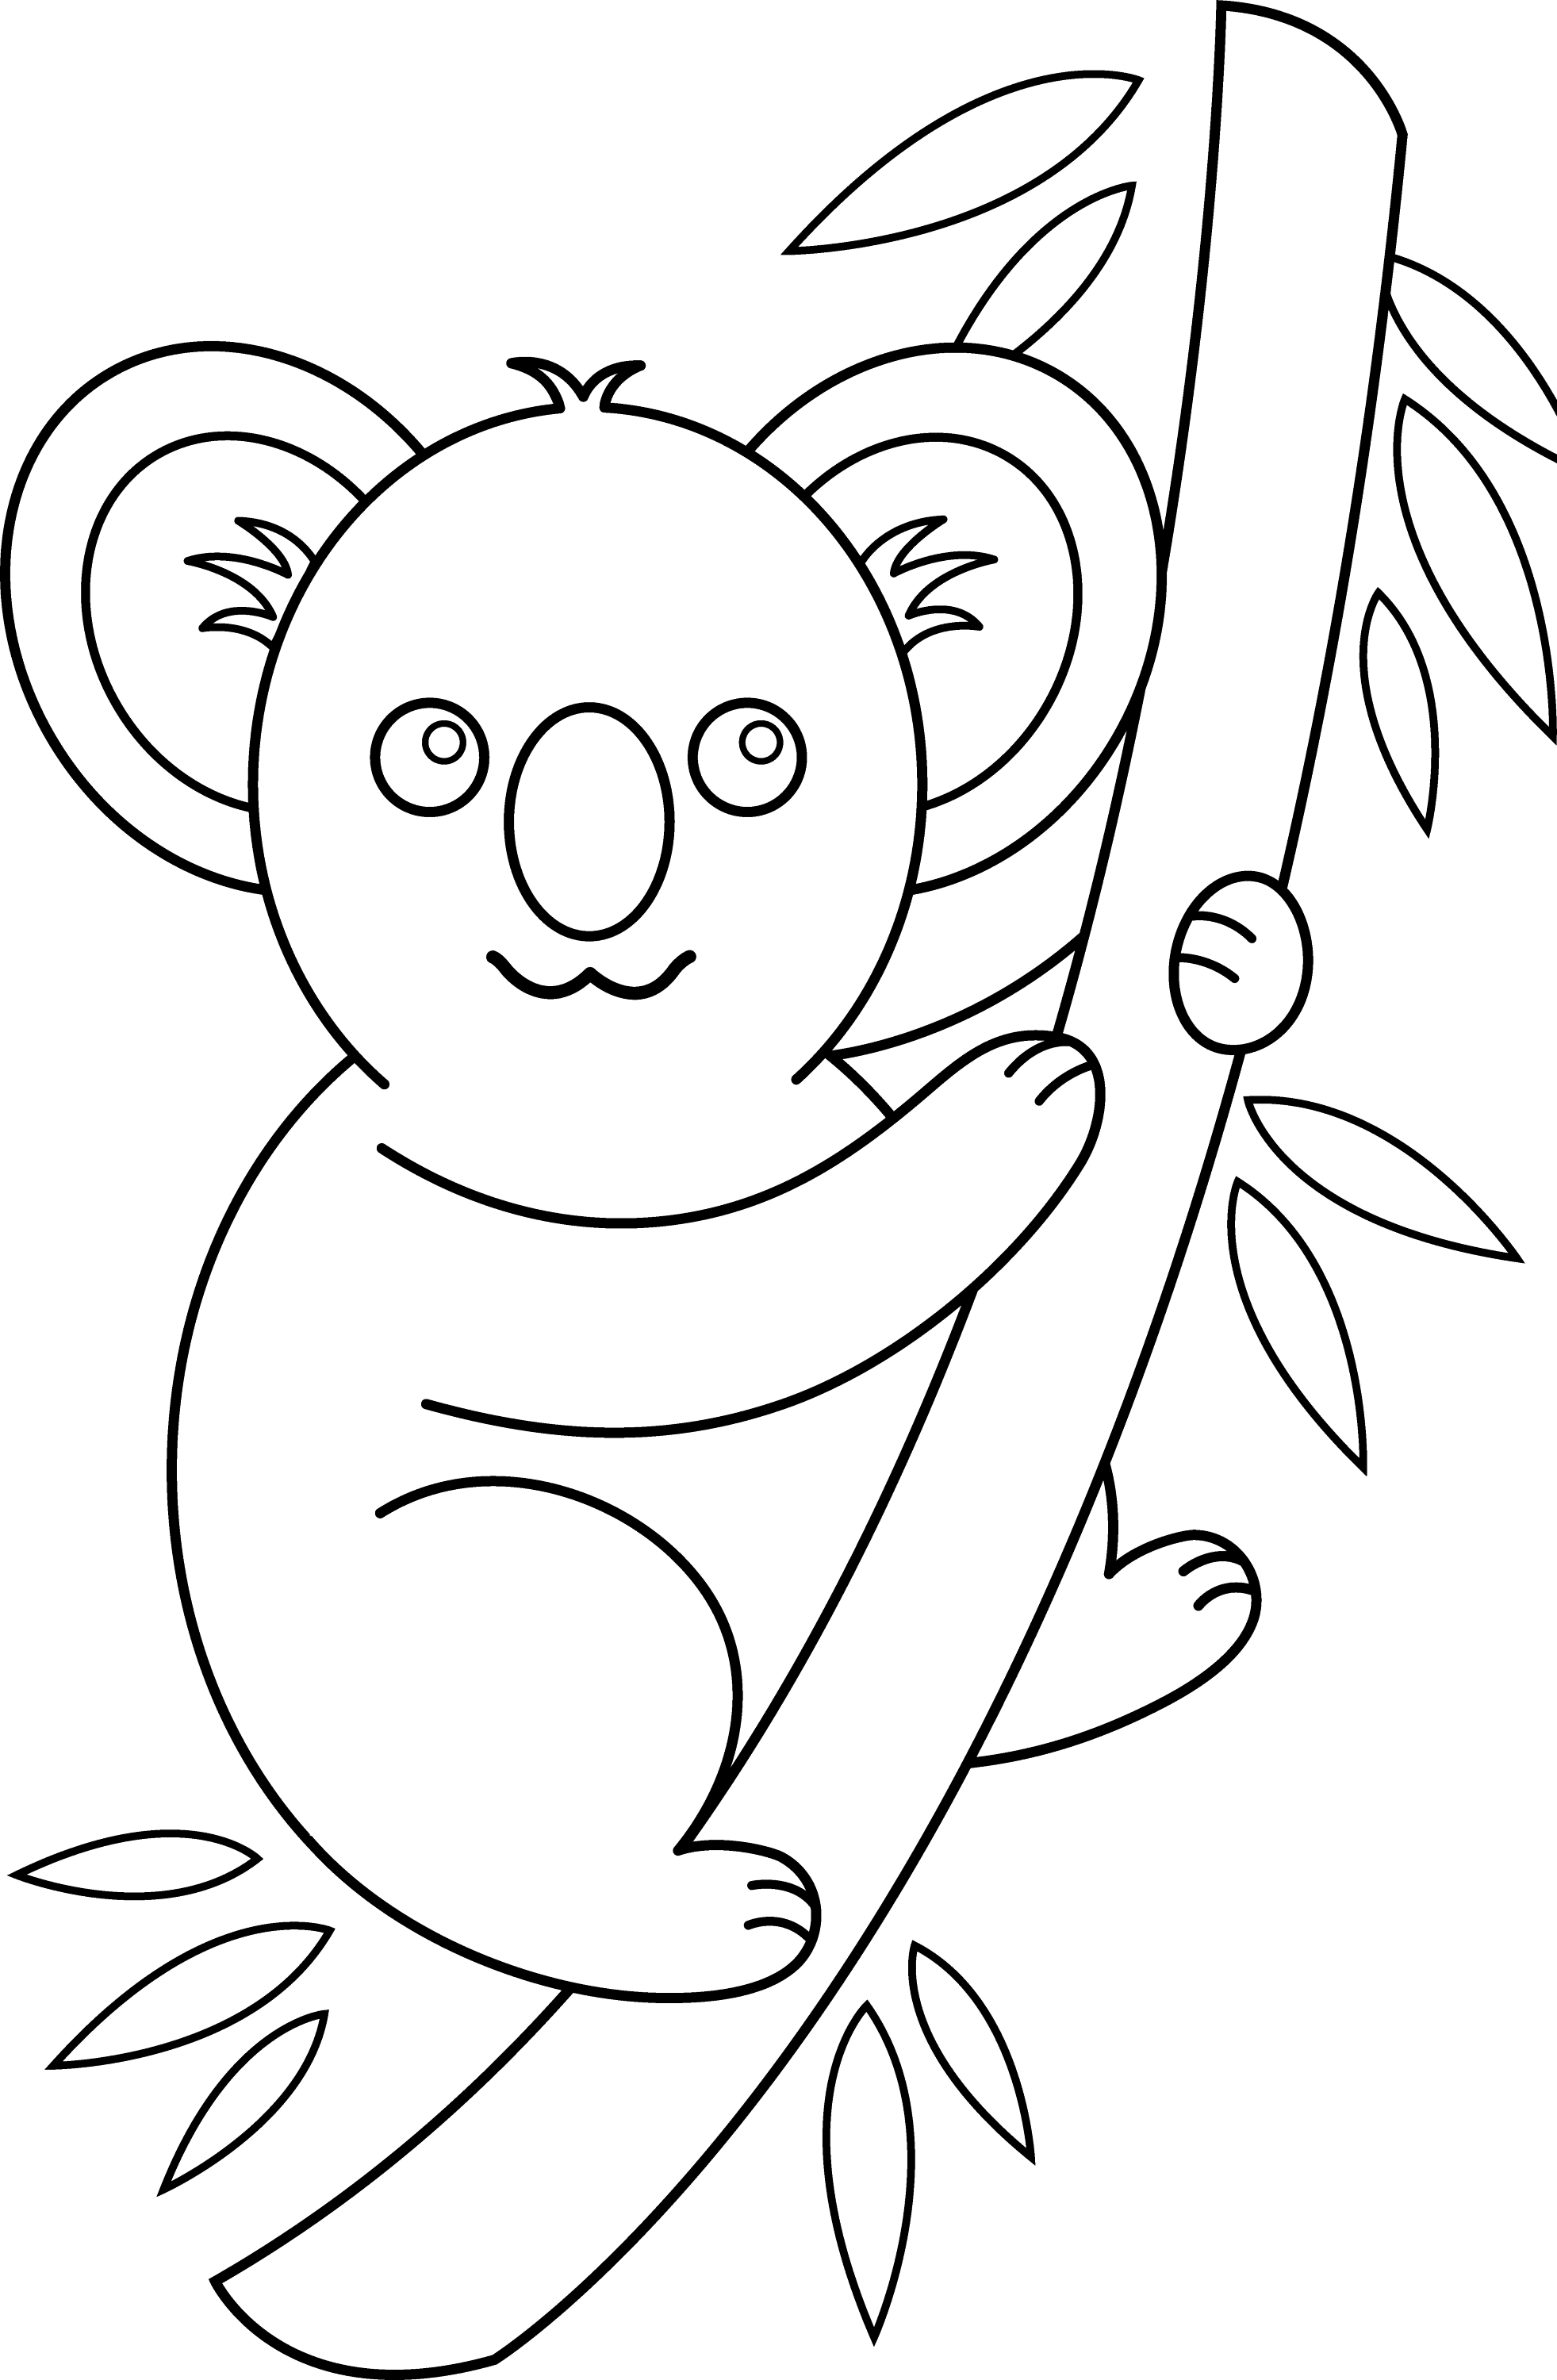 cute baby koala coloring pages download image big nose pc android